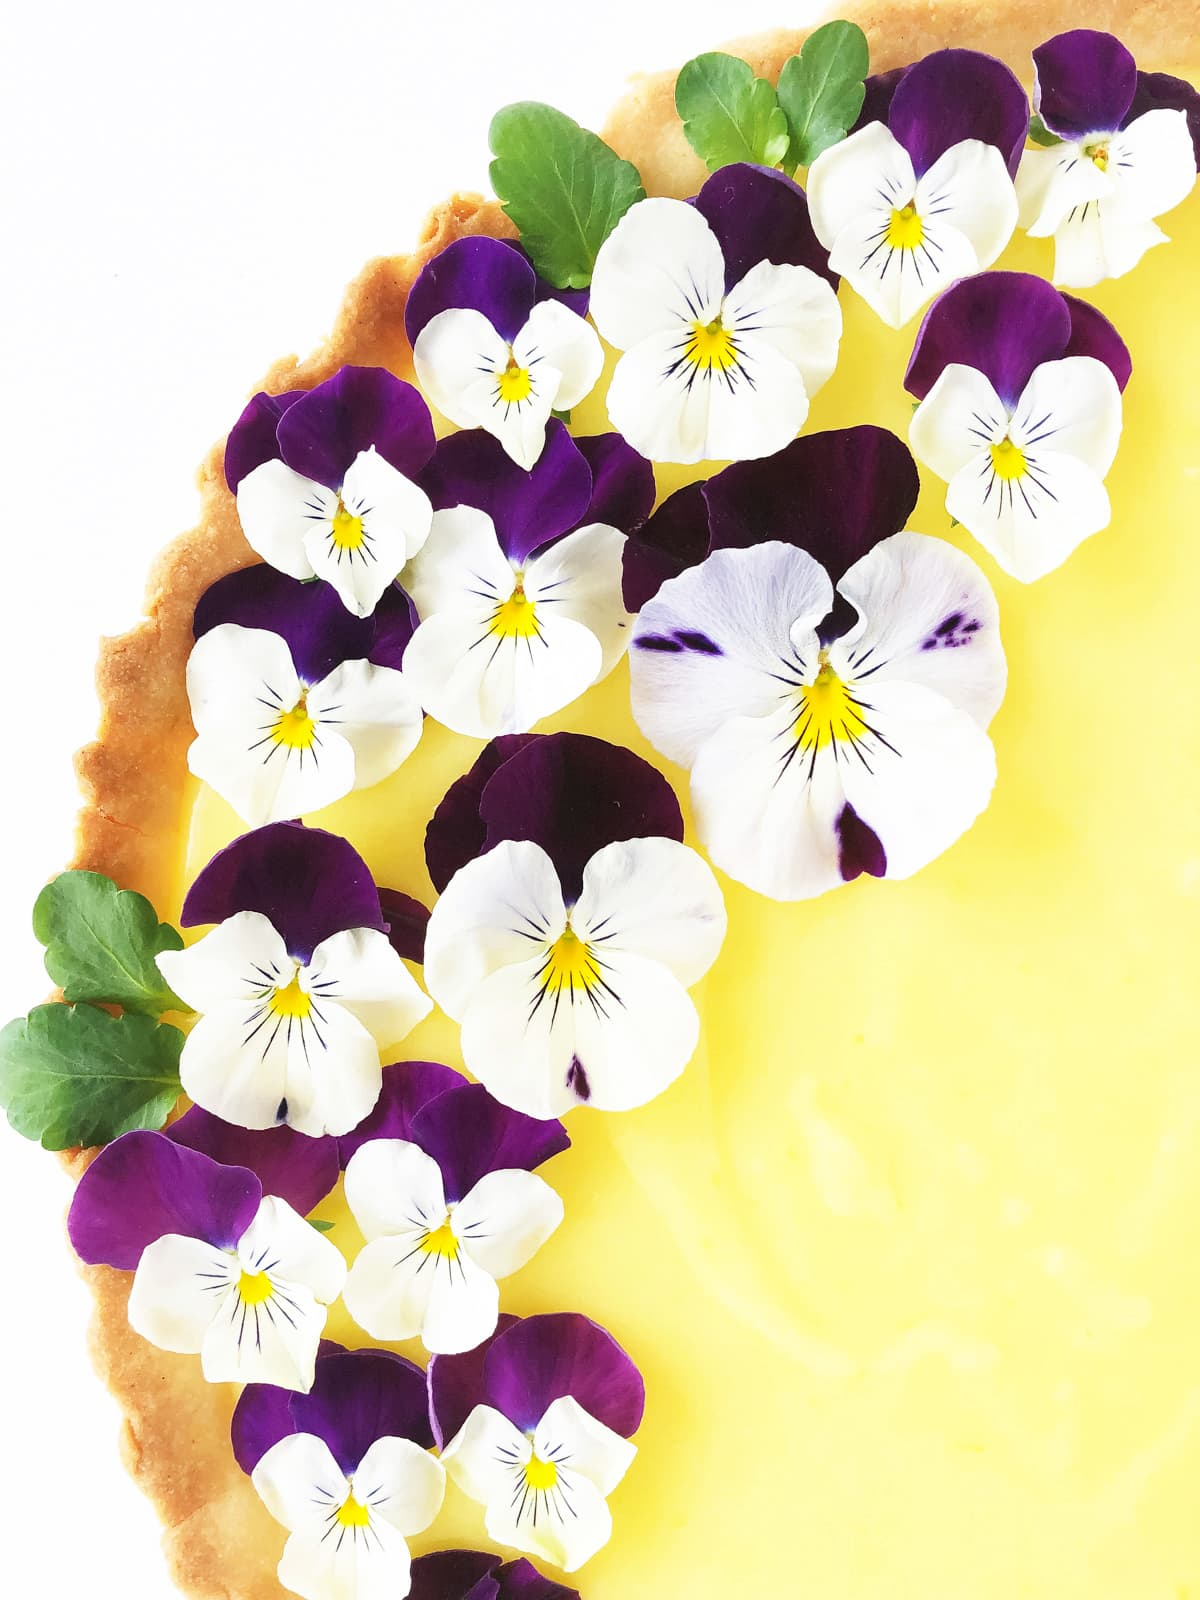 Lemon Tart with a Shortbread Cookie Crust, garnished with Pansies